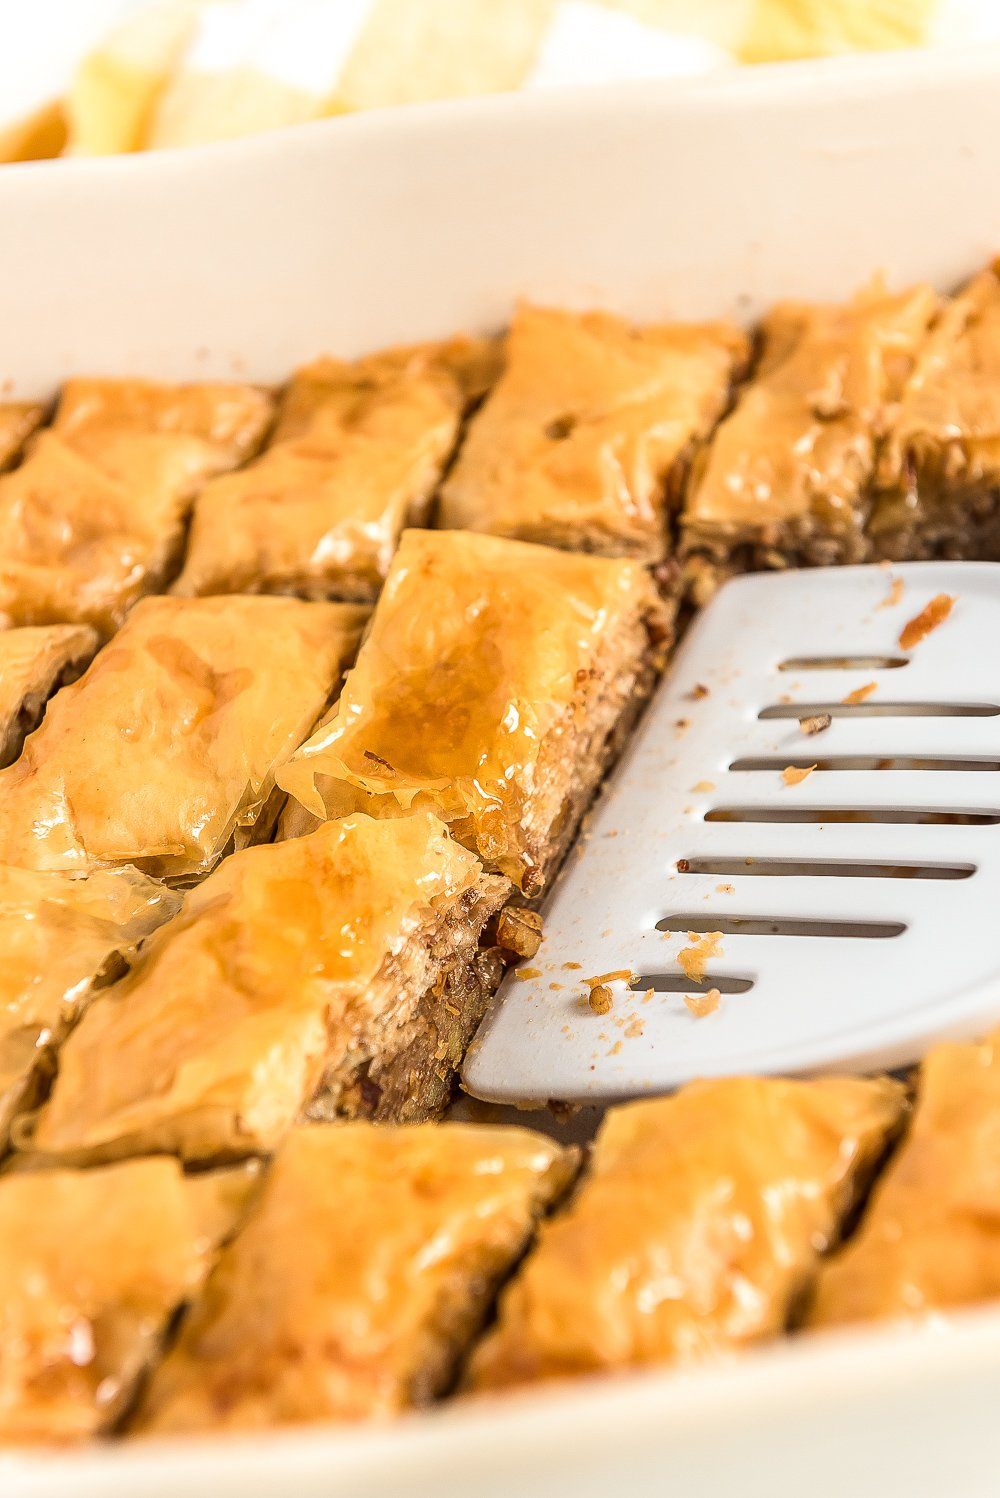 Spatula scooping pieces of baklava out of a baking dish.